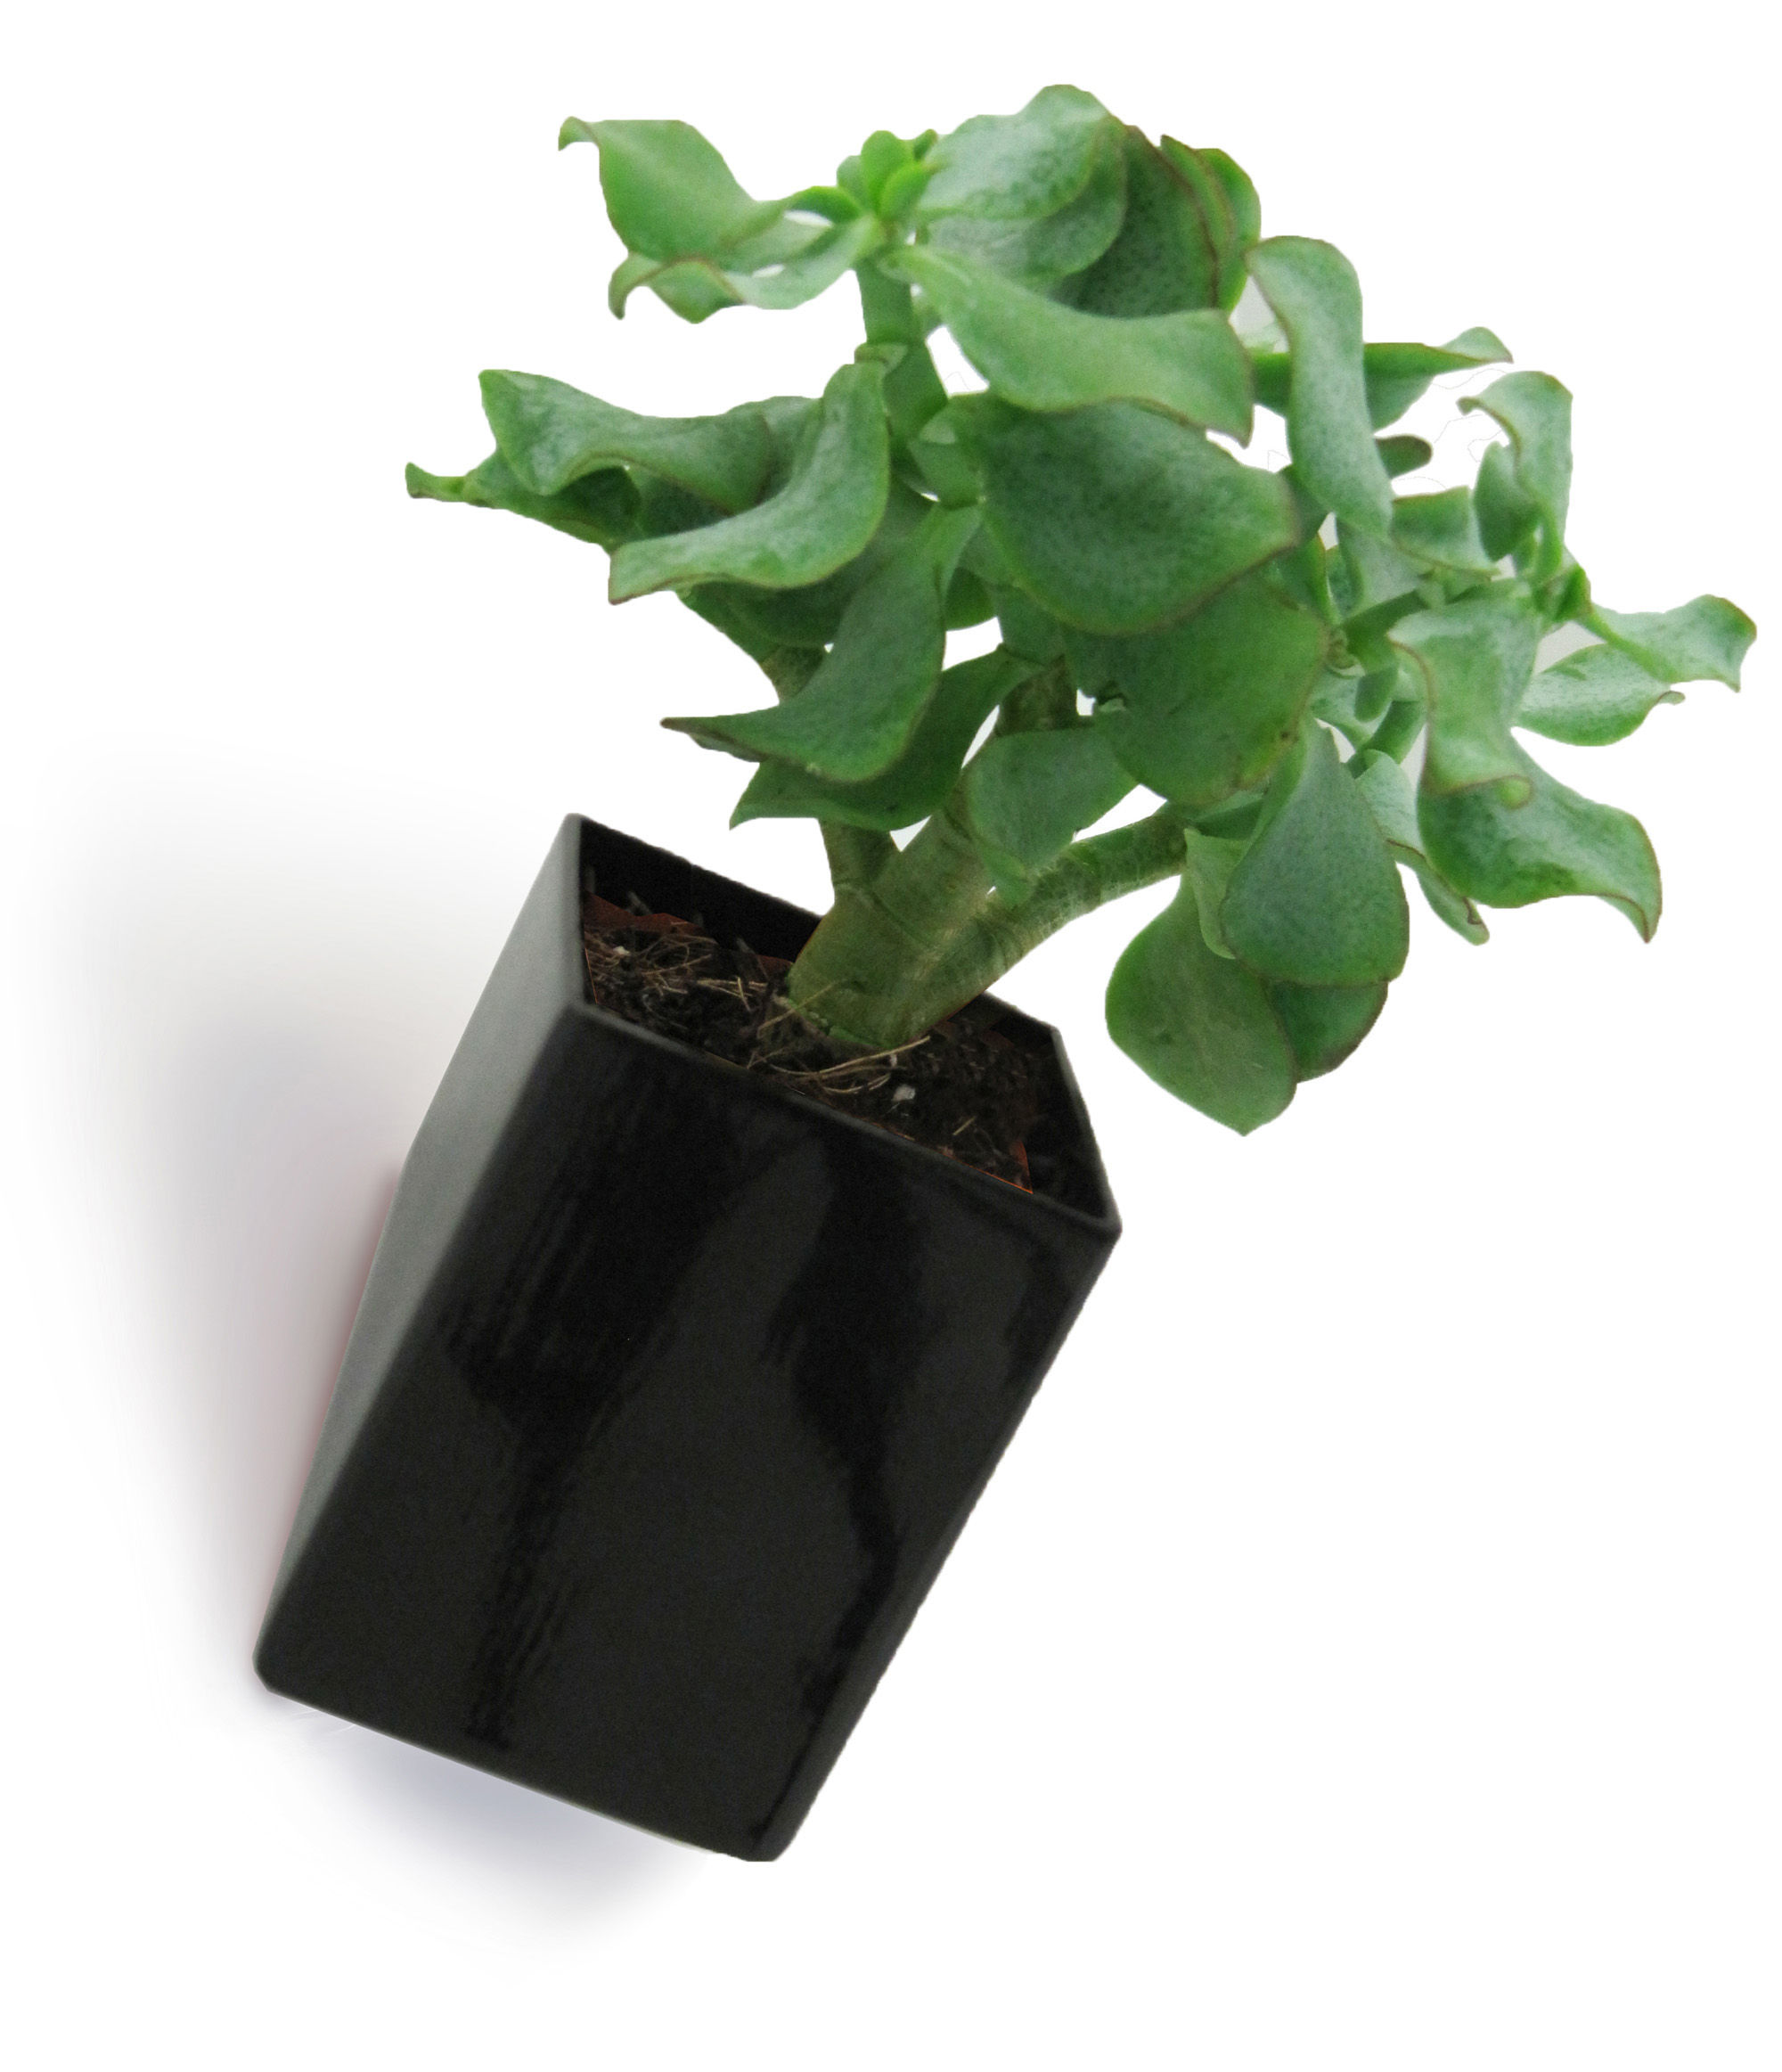 Decoration - Funny & surprising - Off the wall Wall flowerpot - Small / Wall fixation - D 8 cm by Thelermont Hupton - Black - Ceramic